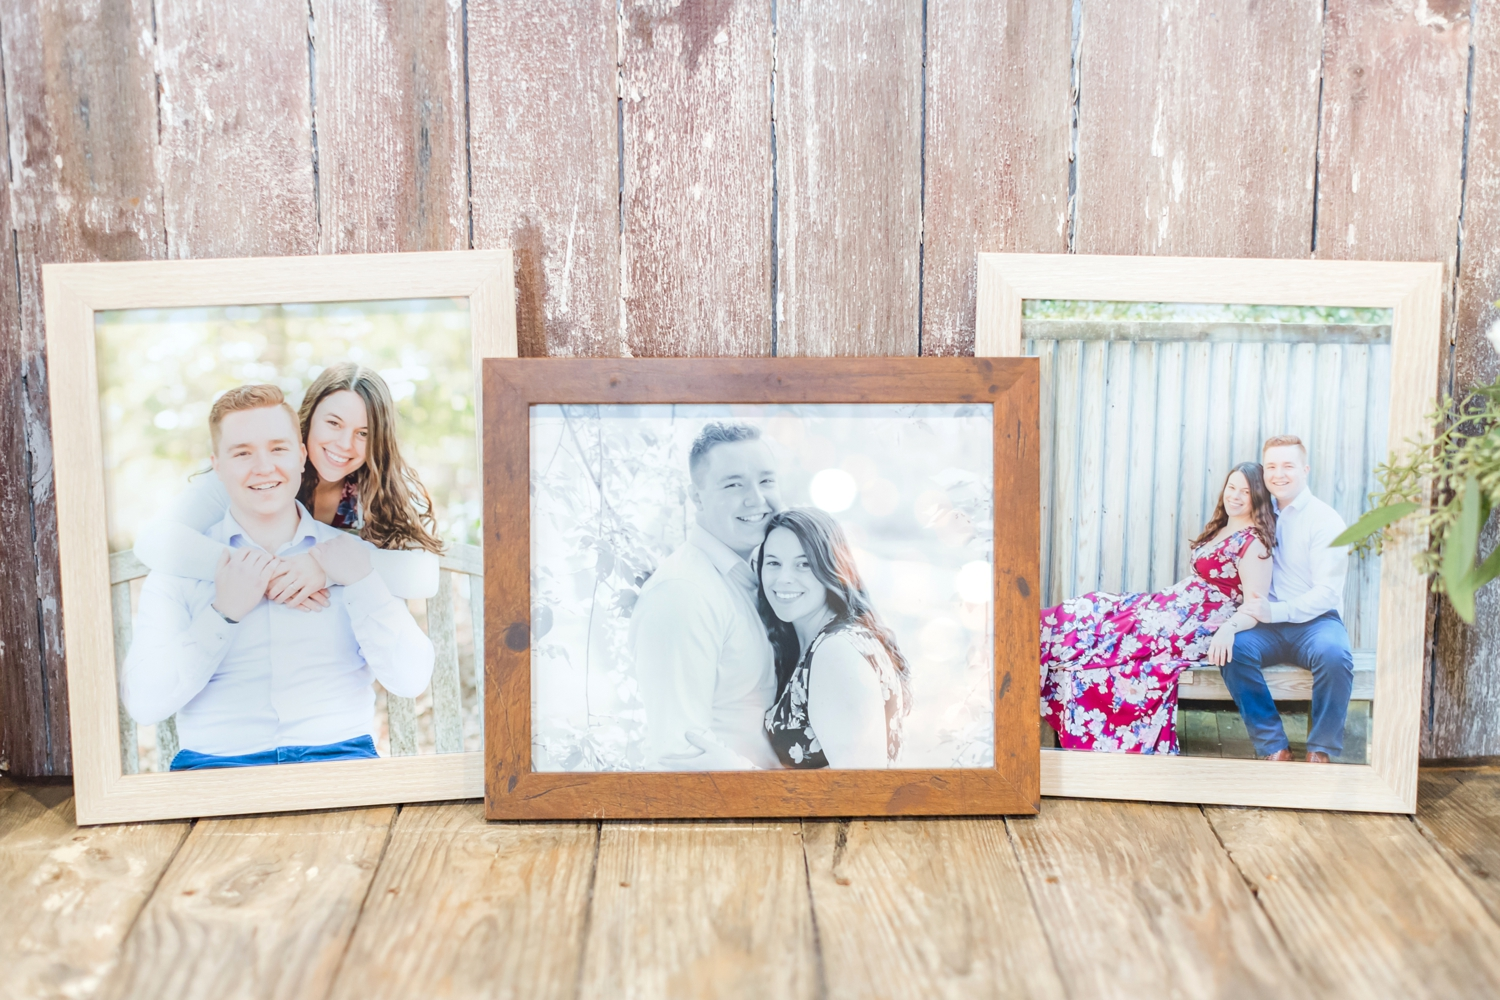 I love when the engagement pictures get framed as decor for the wedding. Adorable!